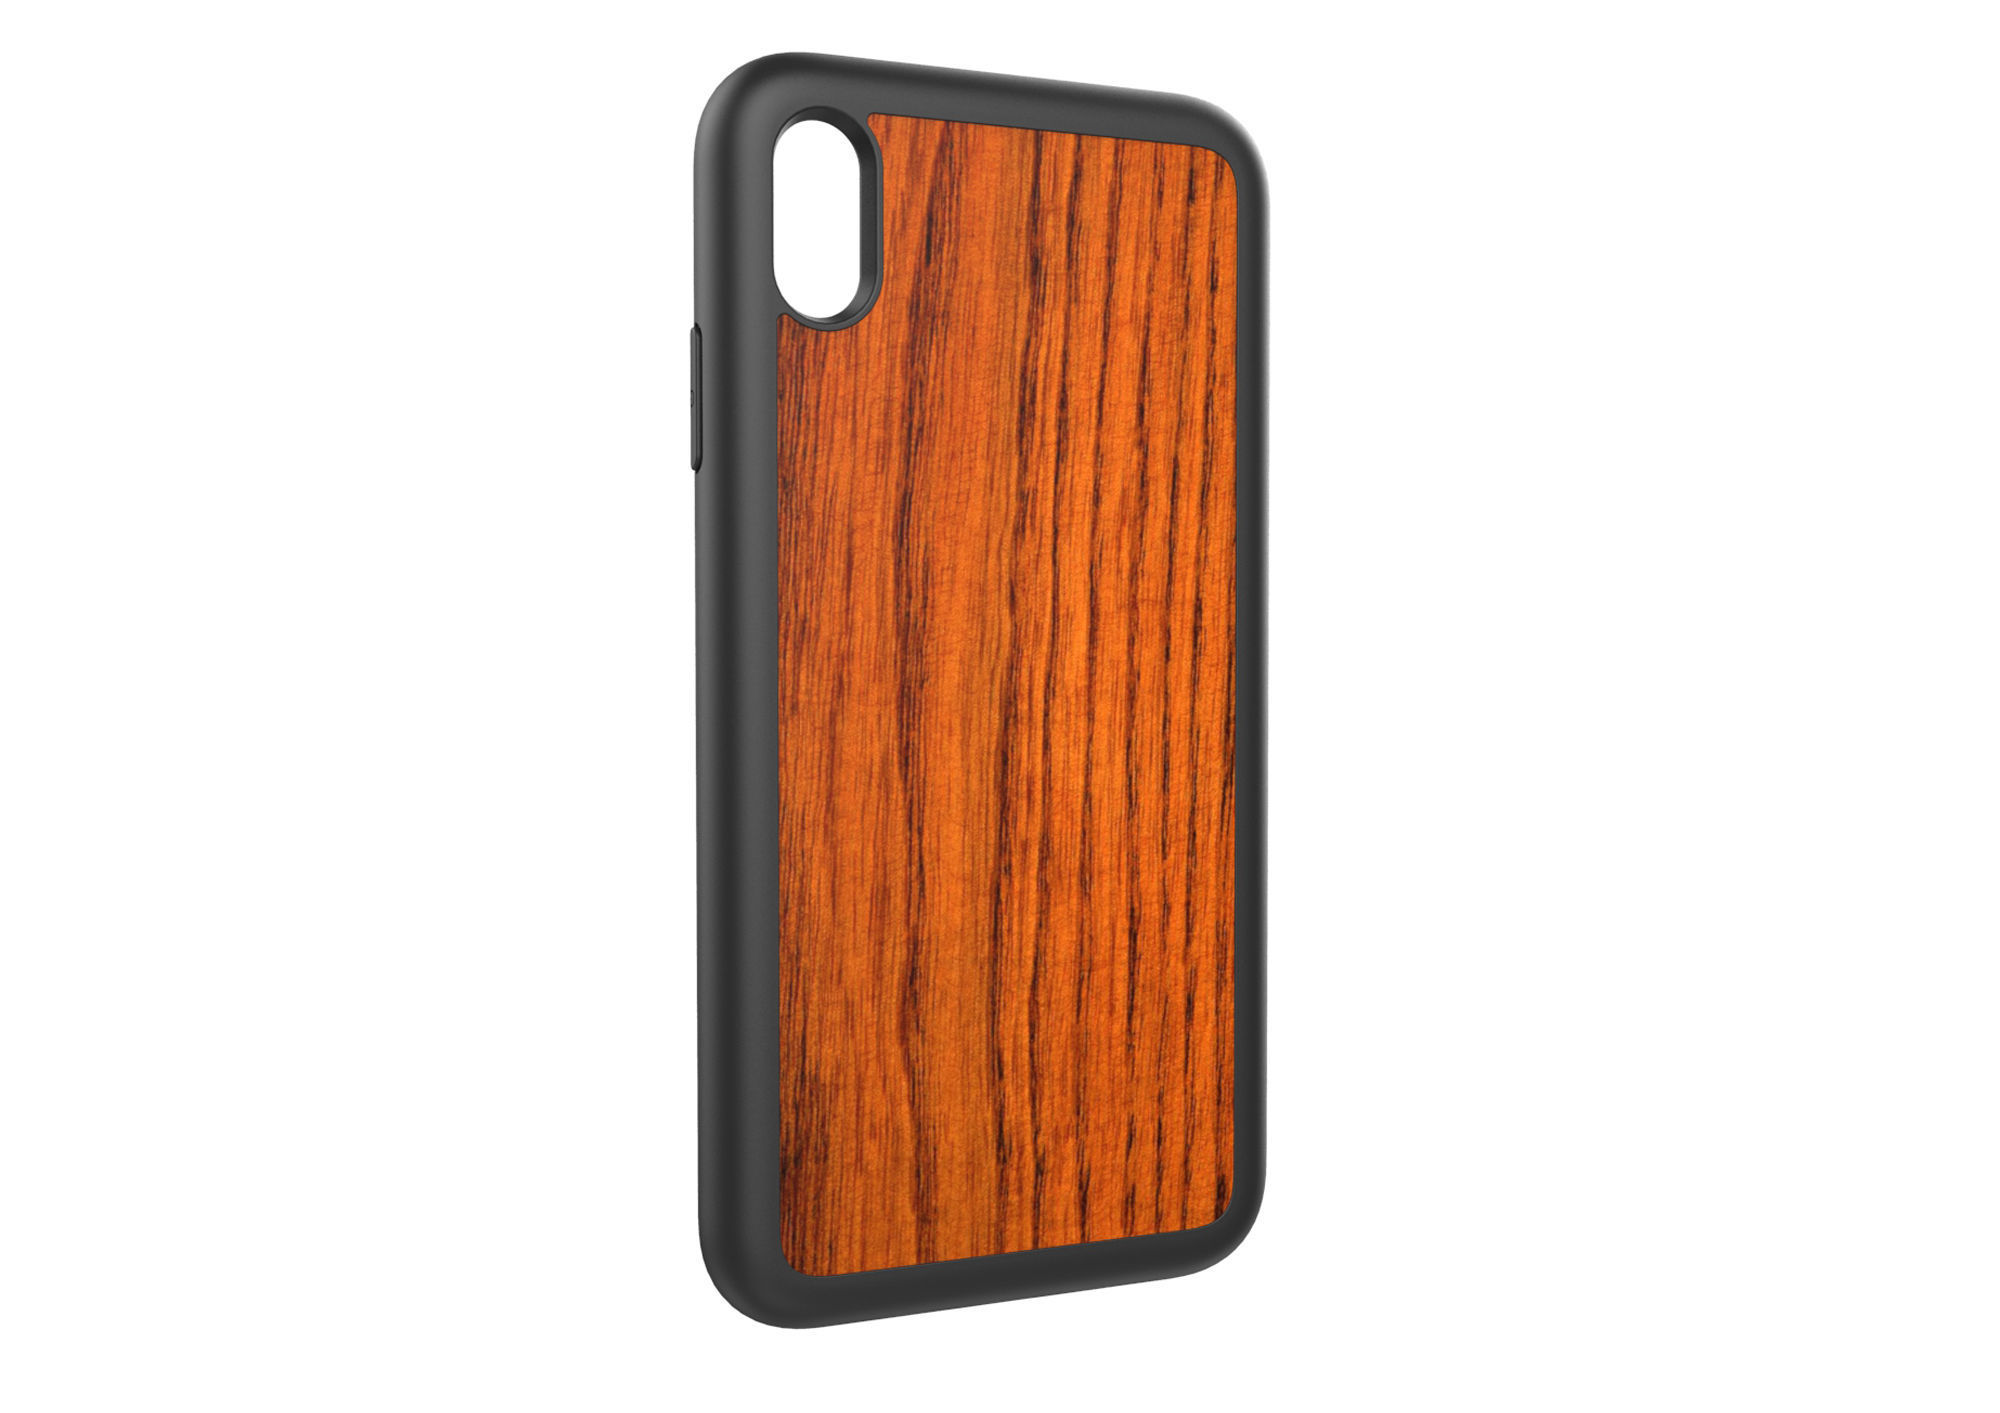 Iphone XS Max wood case